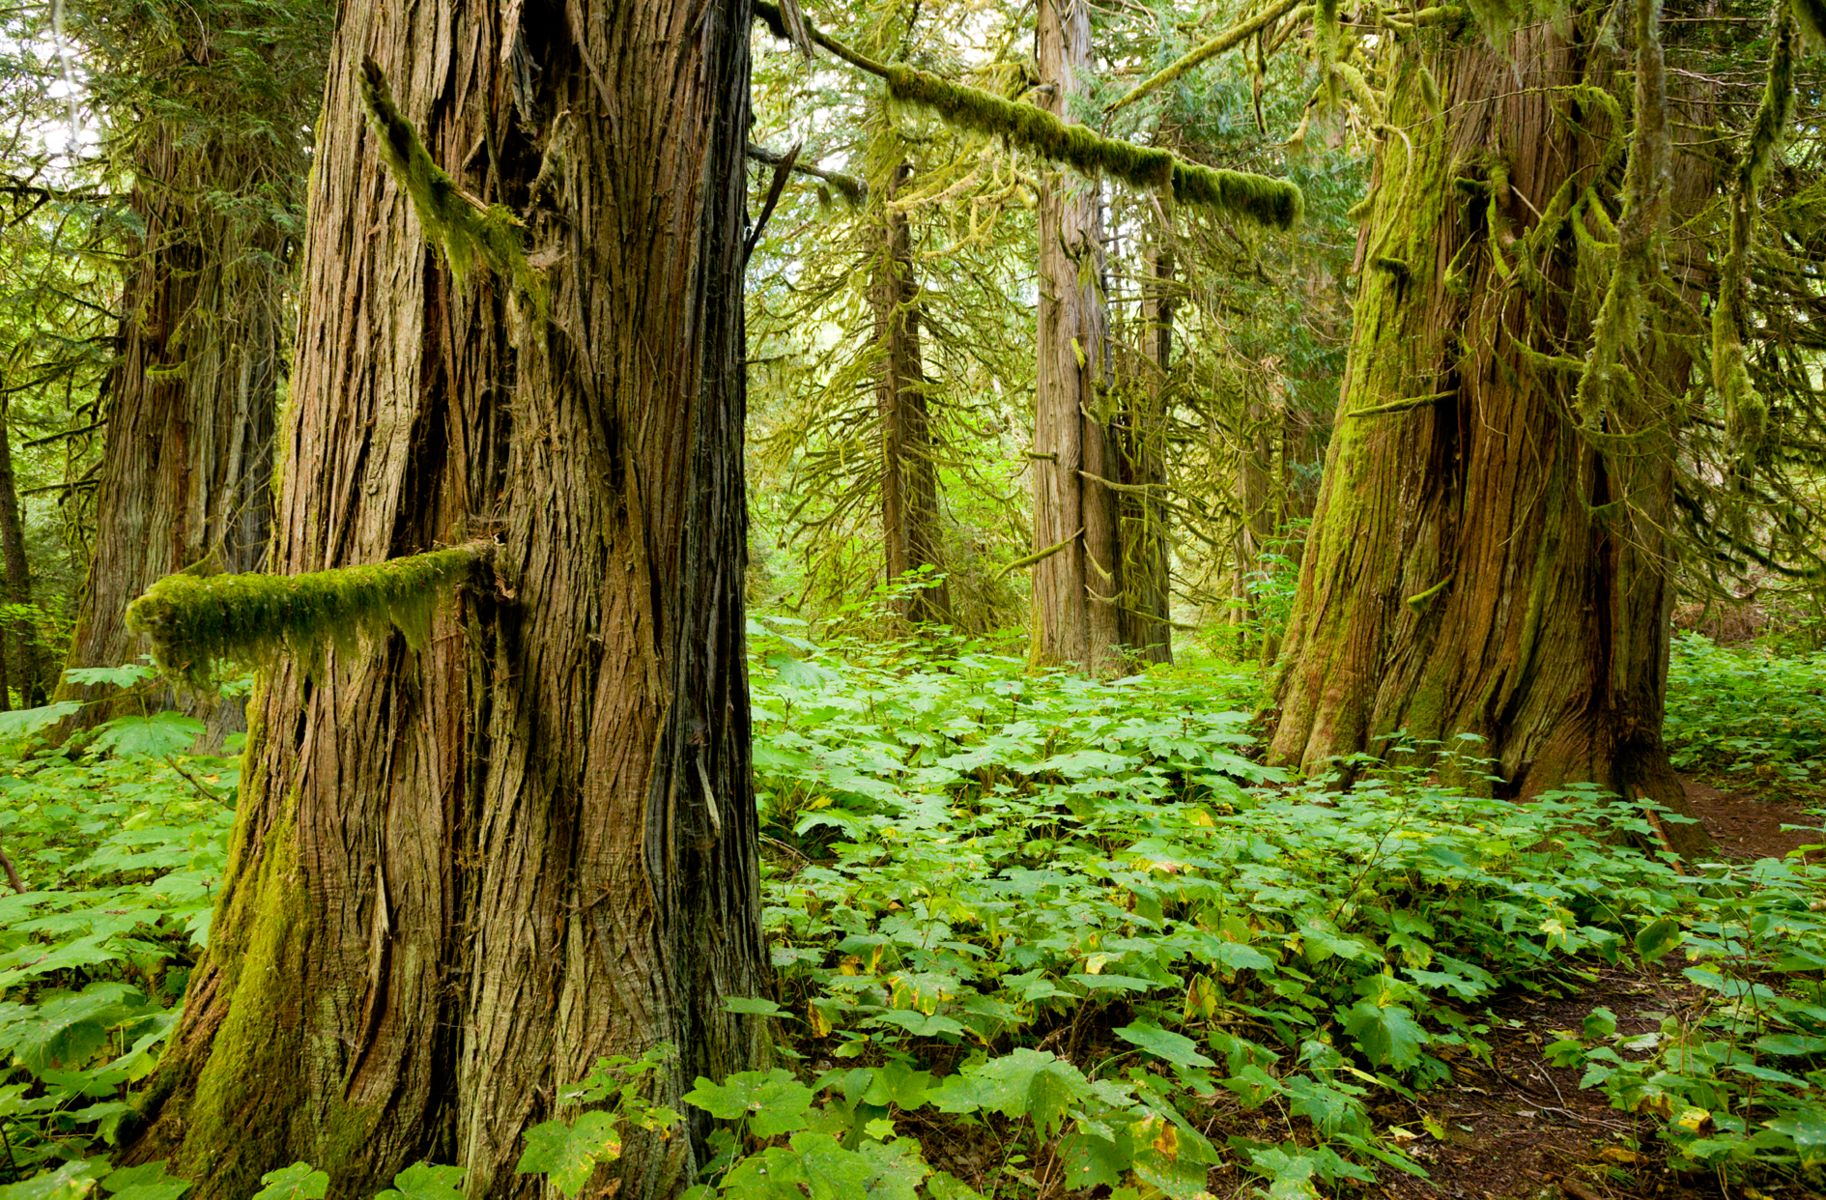 A forest of large, old cedar trees surrounded by forest floor vegetation.